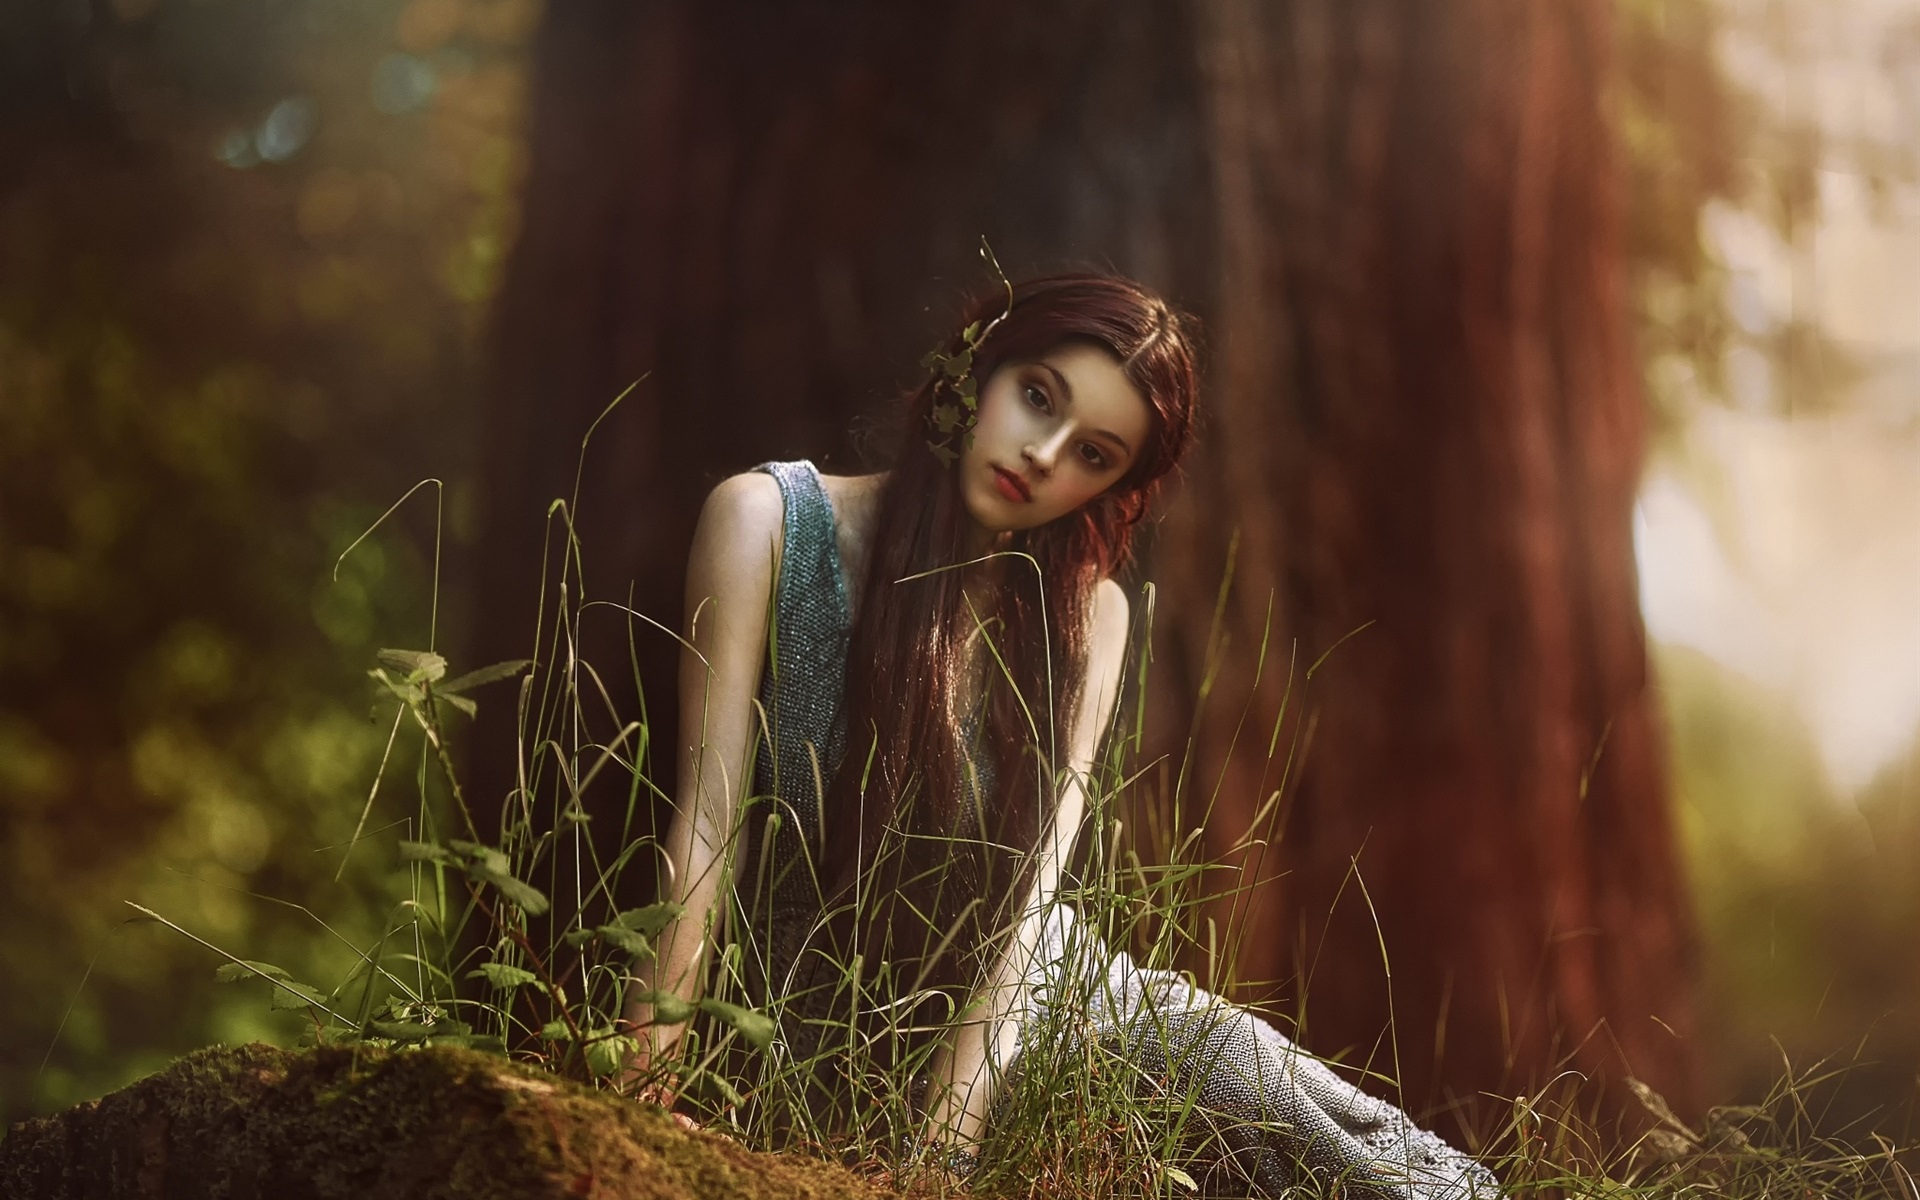 Fall Woodland Creatures Wallpaper Like Elf Girl In Forest Long Hair Wallpaper Girls